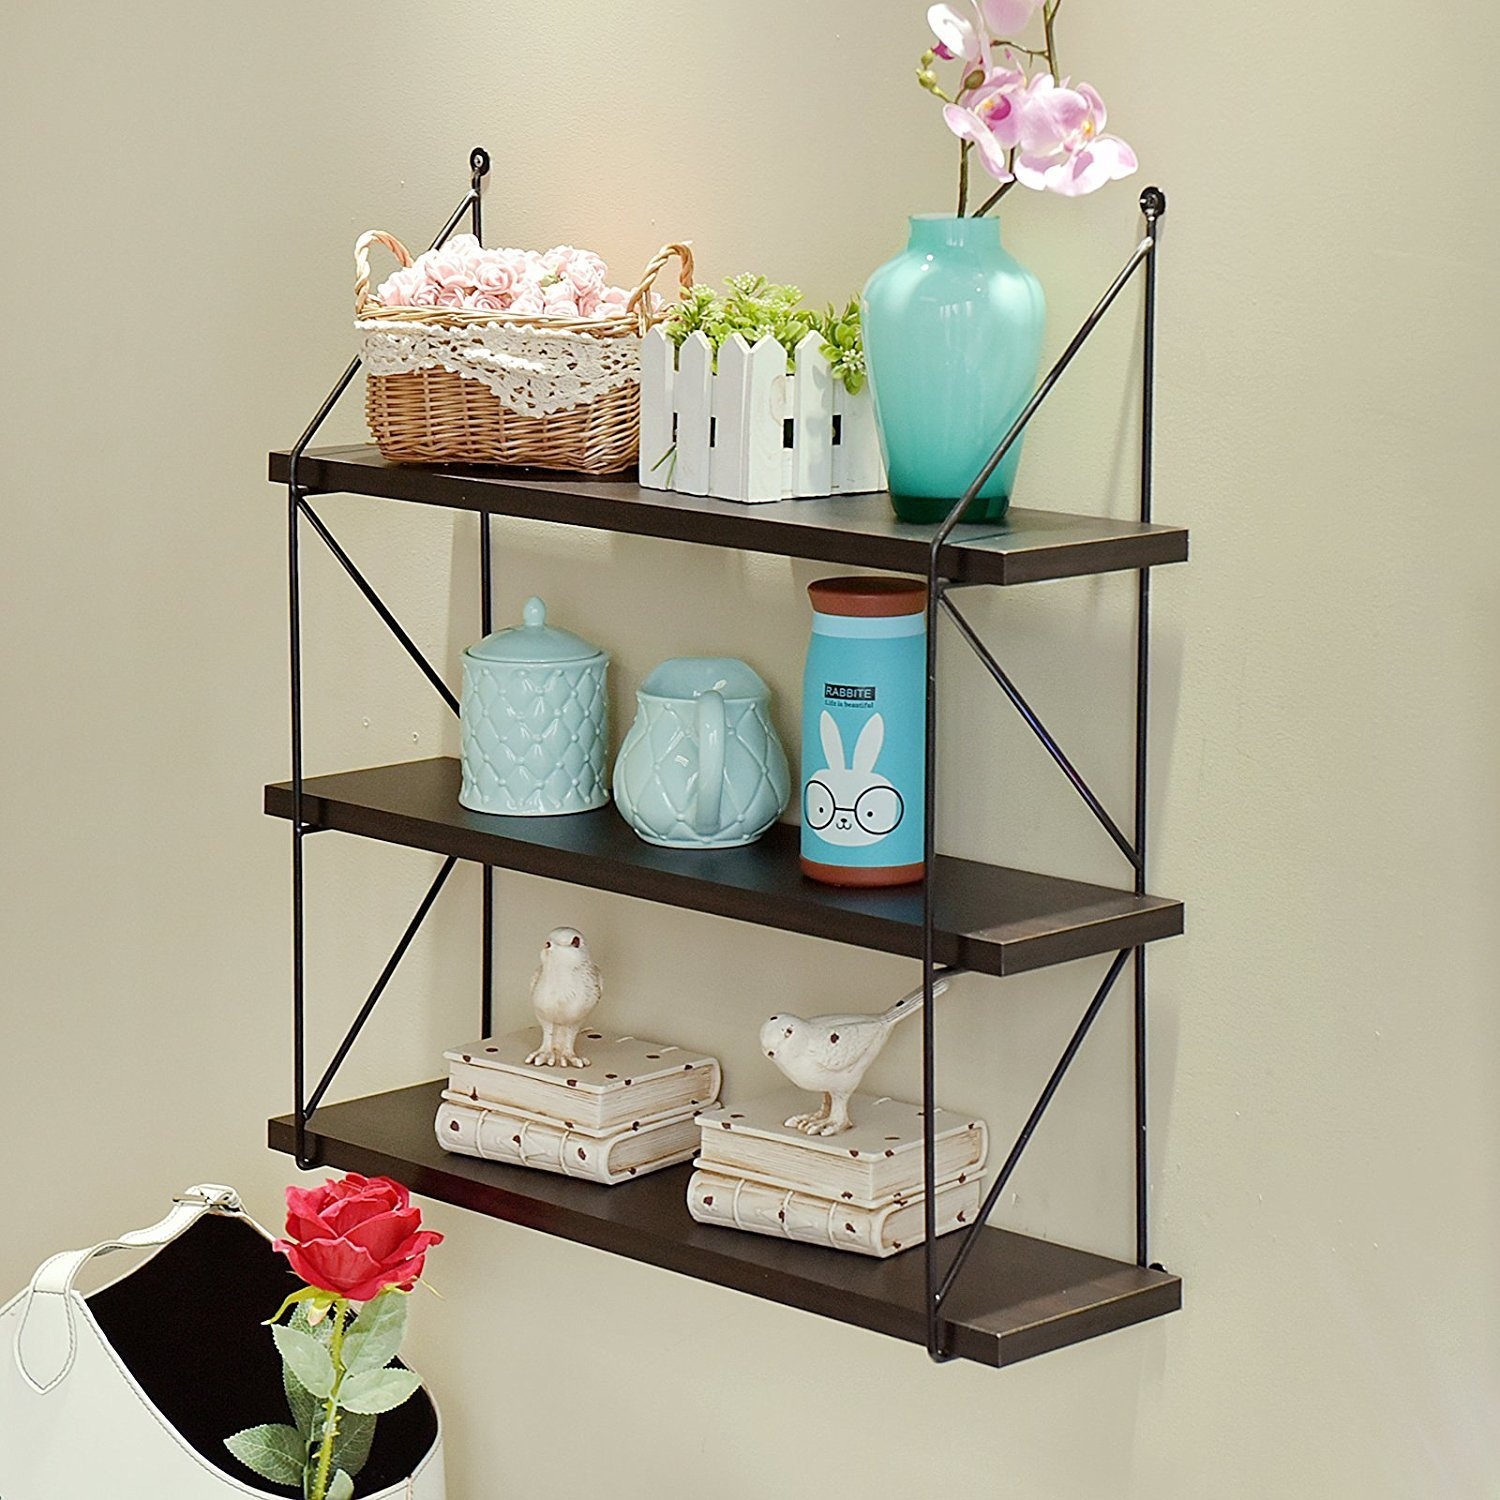 Kitchen Wall Mounted Shelves: Top 10 Wall Mounted Storage